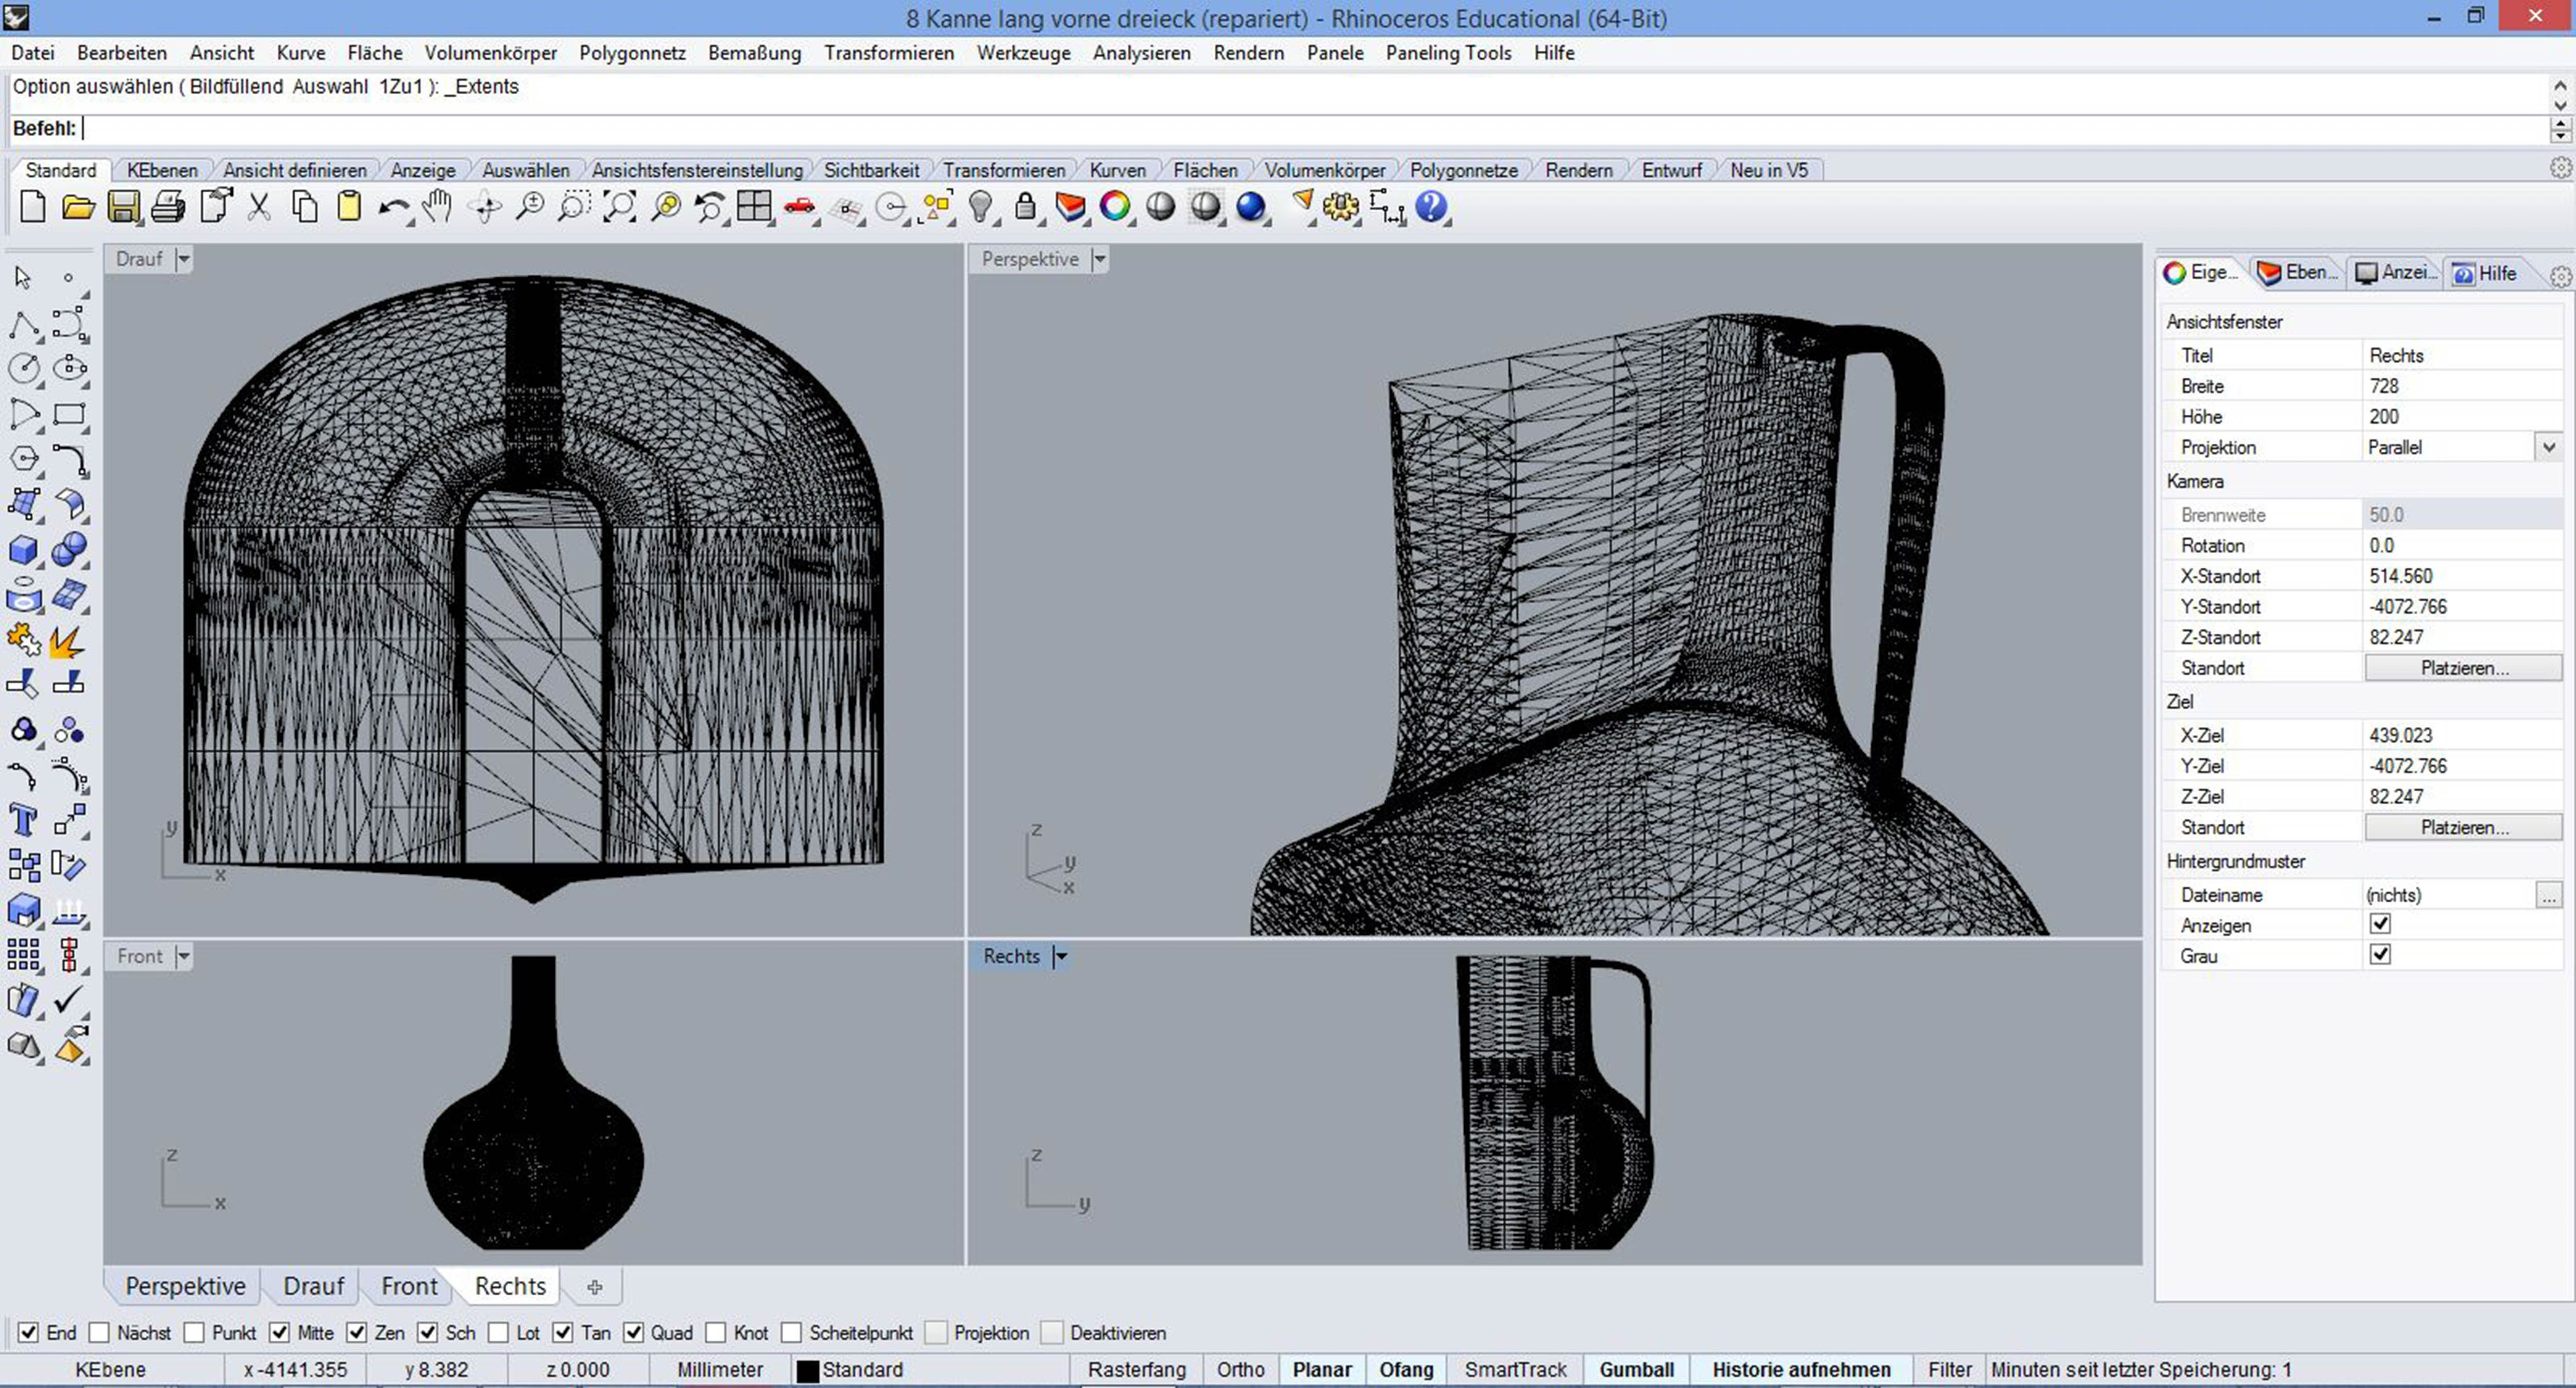 Iterated 3D model adapted to the technological limitations